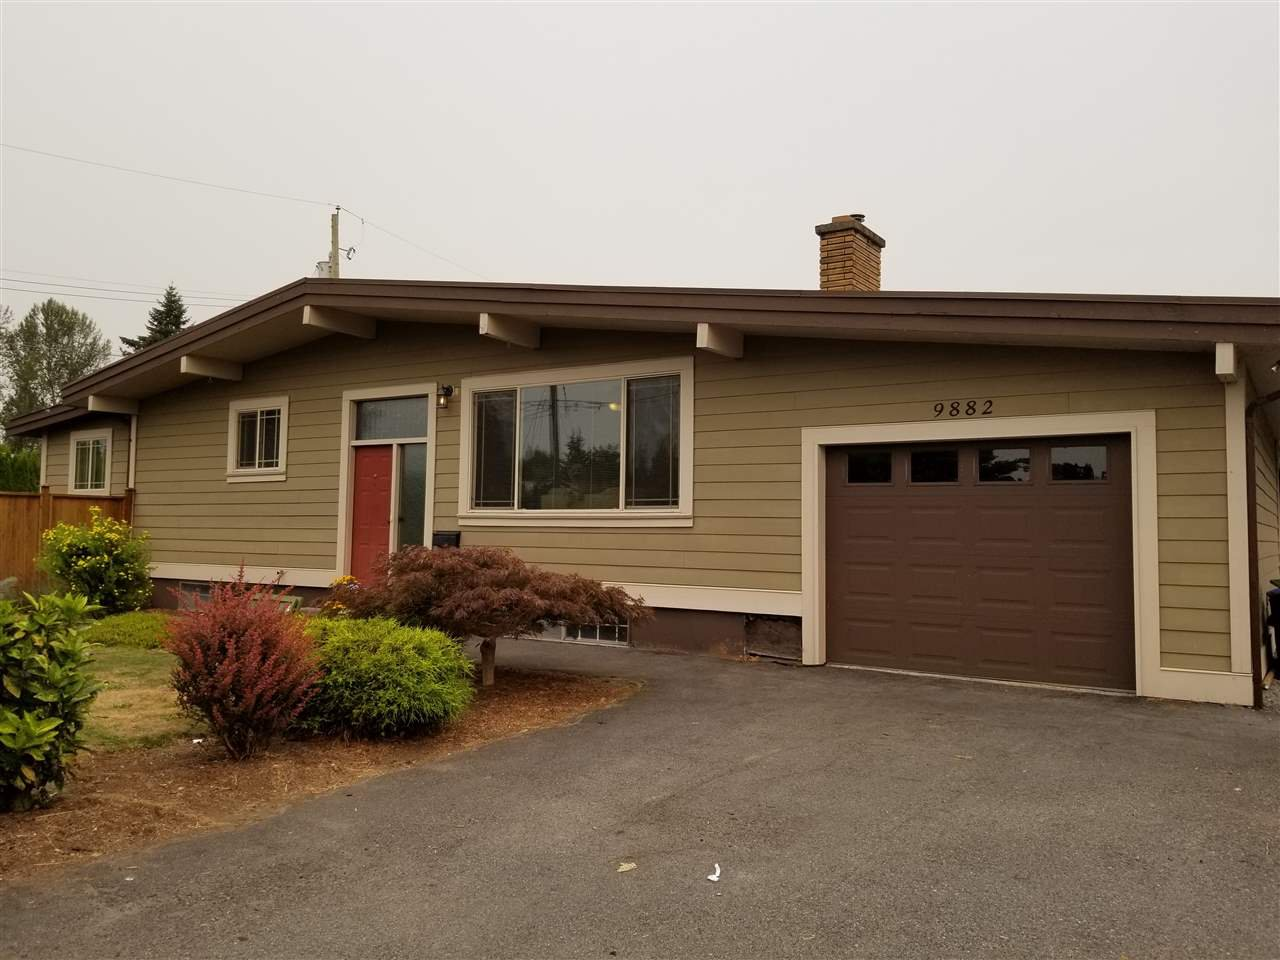 Main Photo: 9882 MENZIES Street in Chilliwack: Chilliwack N Yale-Well House for sale : MLS®# R2328969